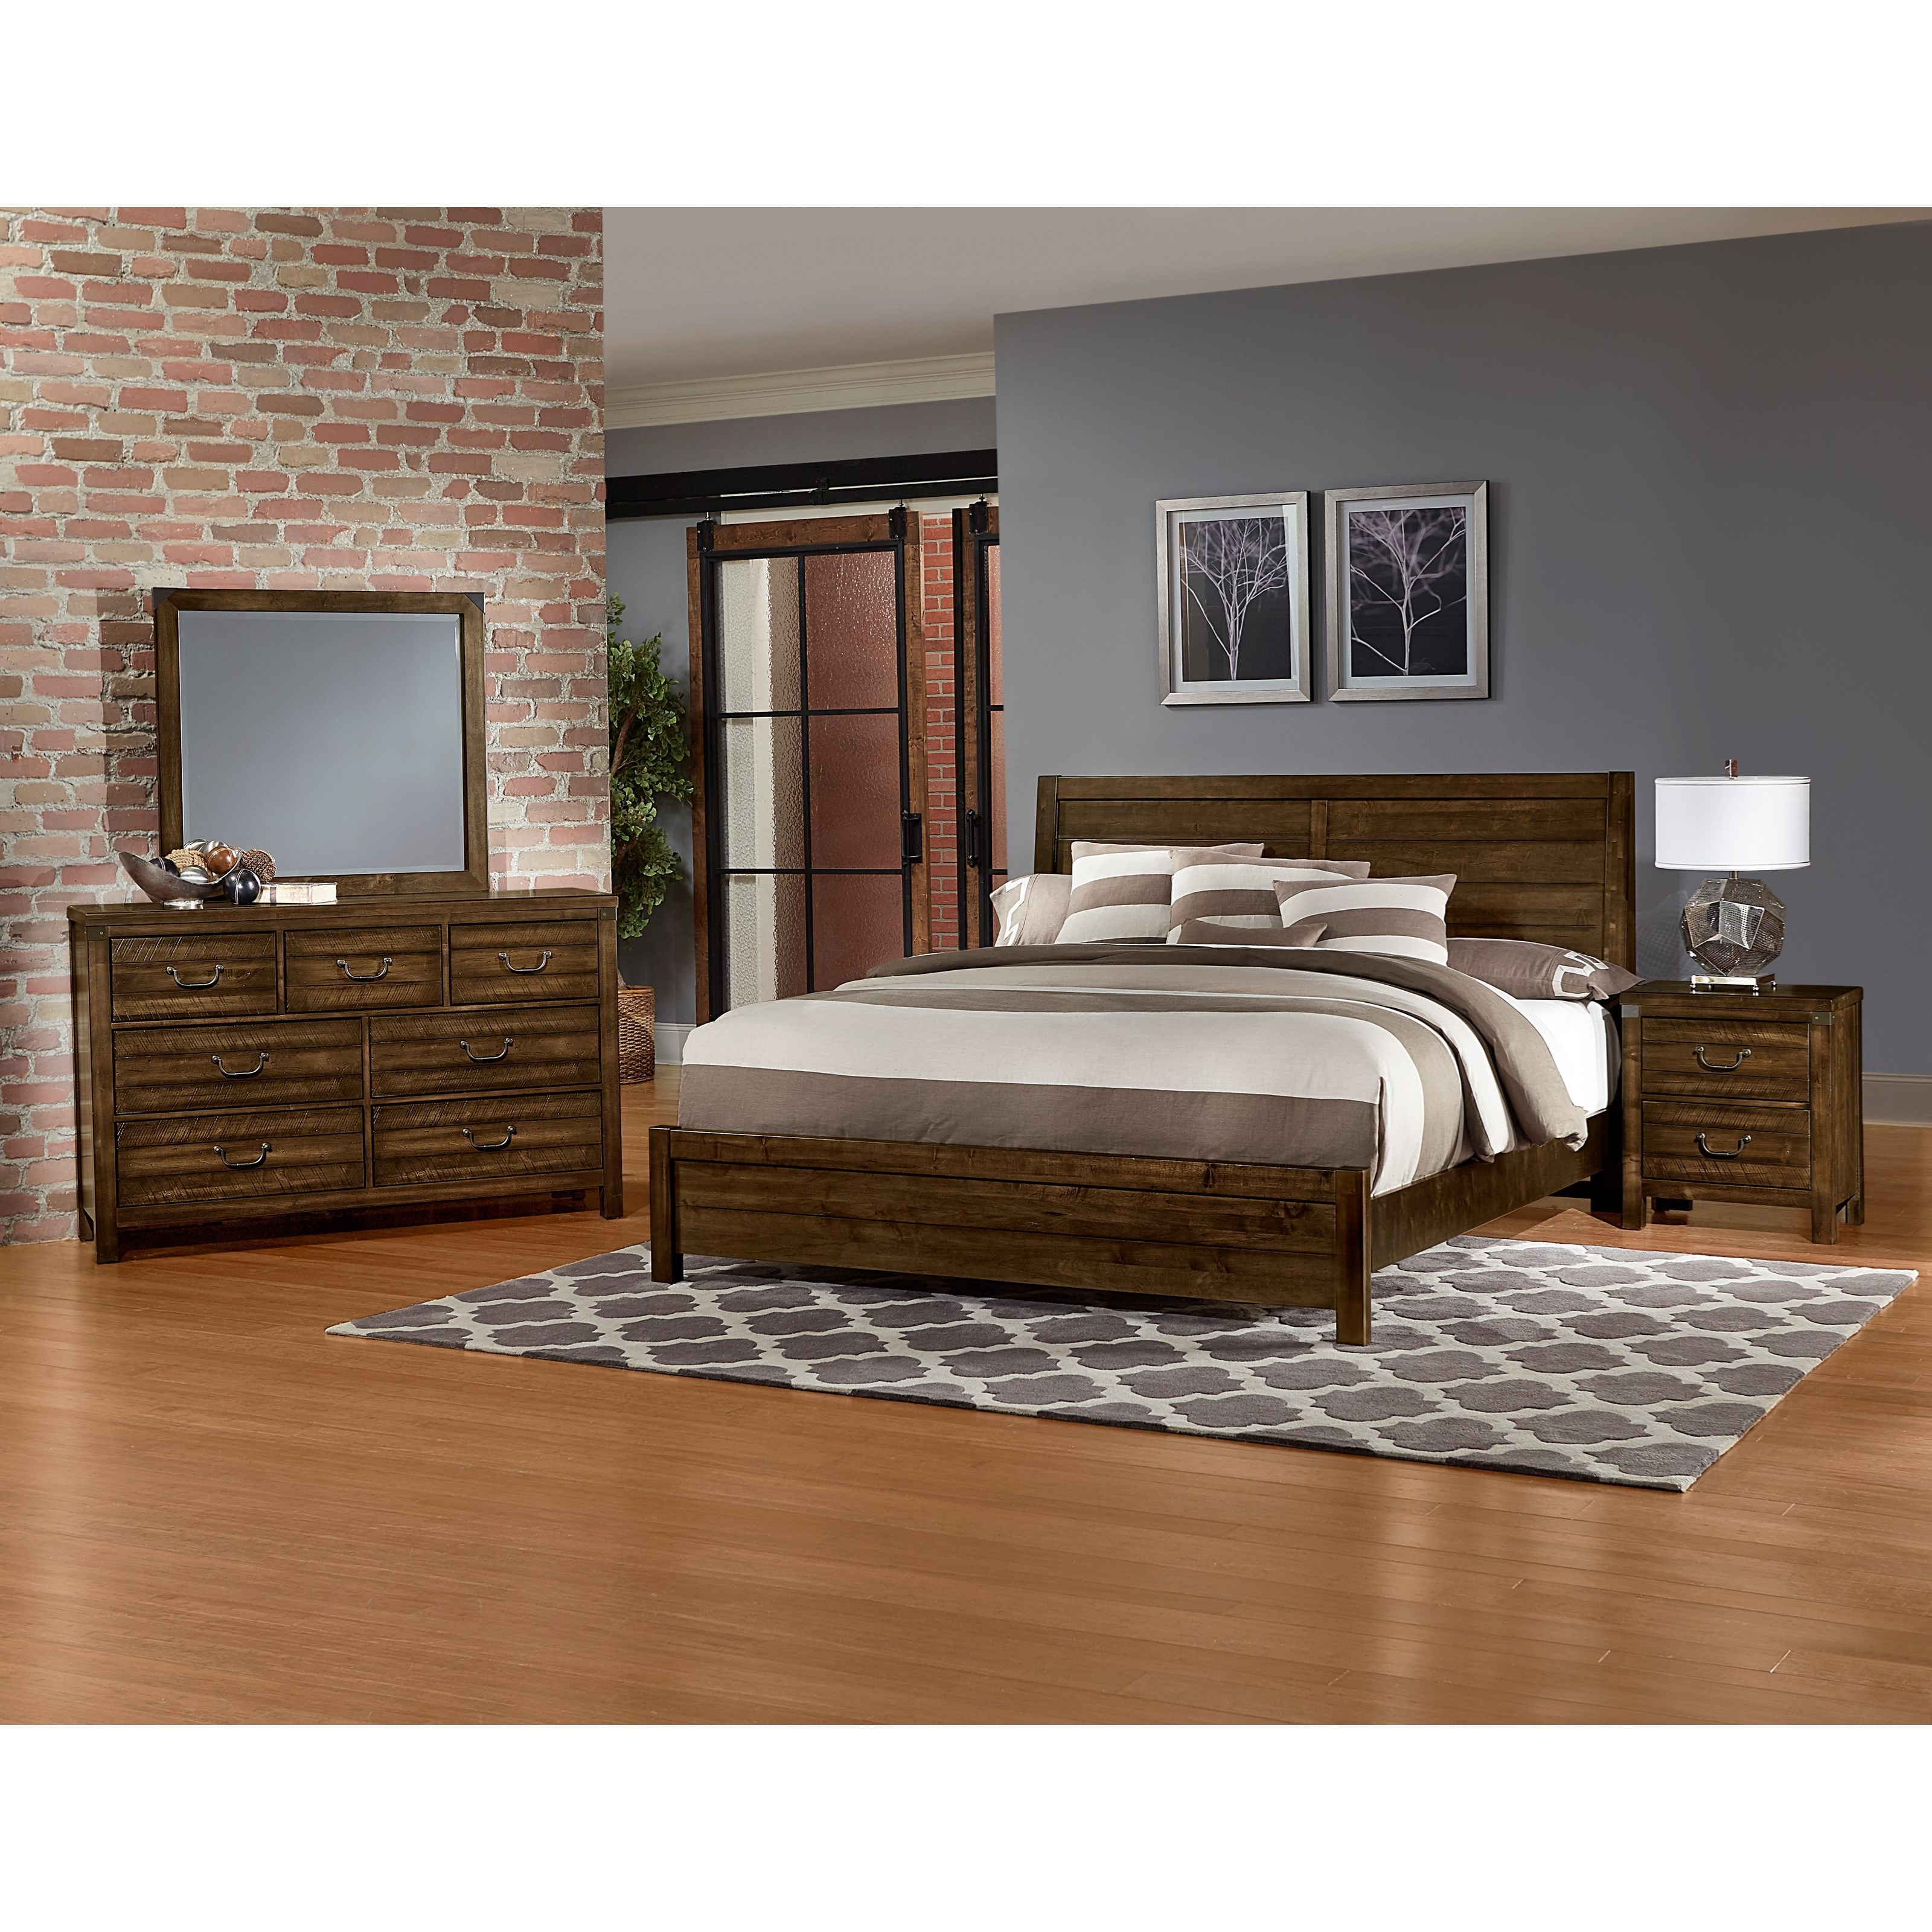 Sedgwick Queen Bedroom Group by Artisan & Post at Crowley Furniture & Mattress